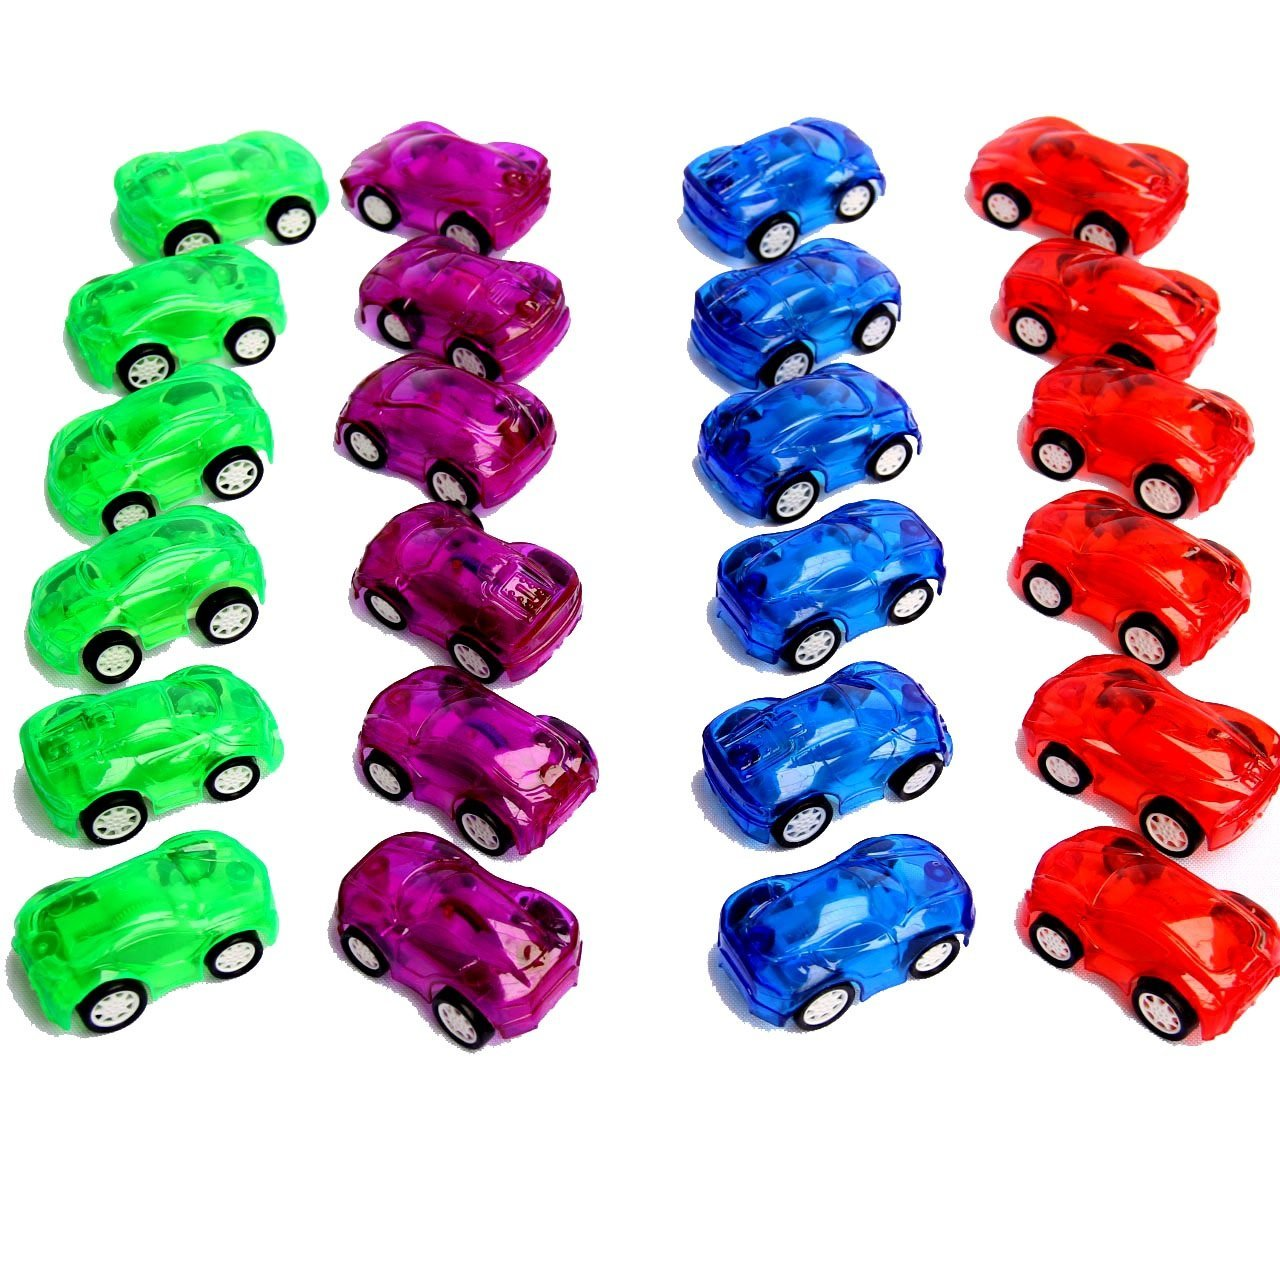 Dazzling Toys 2 in. Pull Back & Let Go Racer Cars - Pack of 12 Cars - Assorted Car Colors